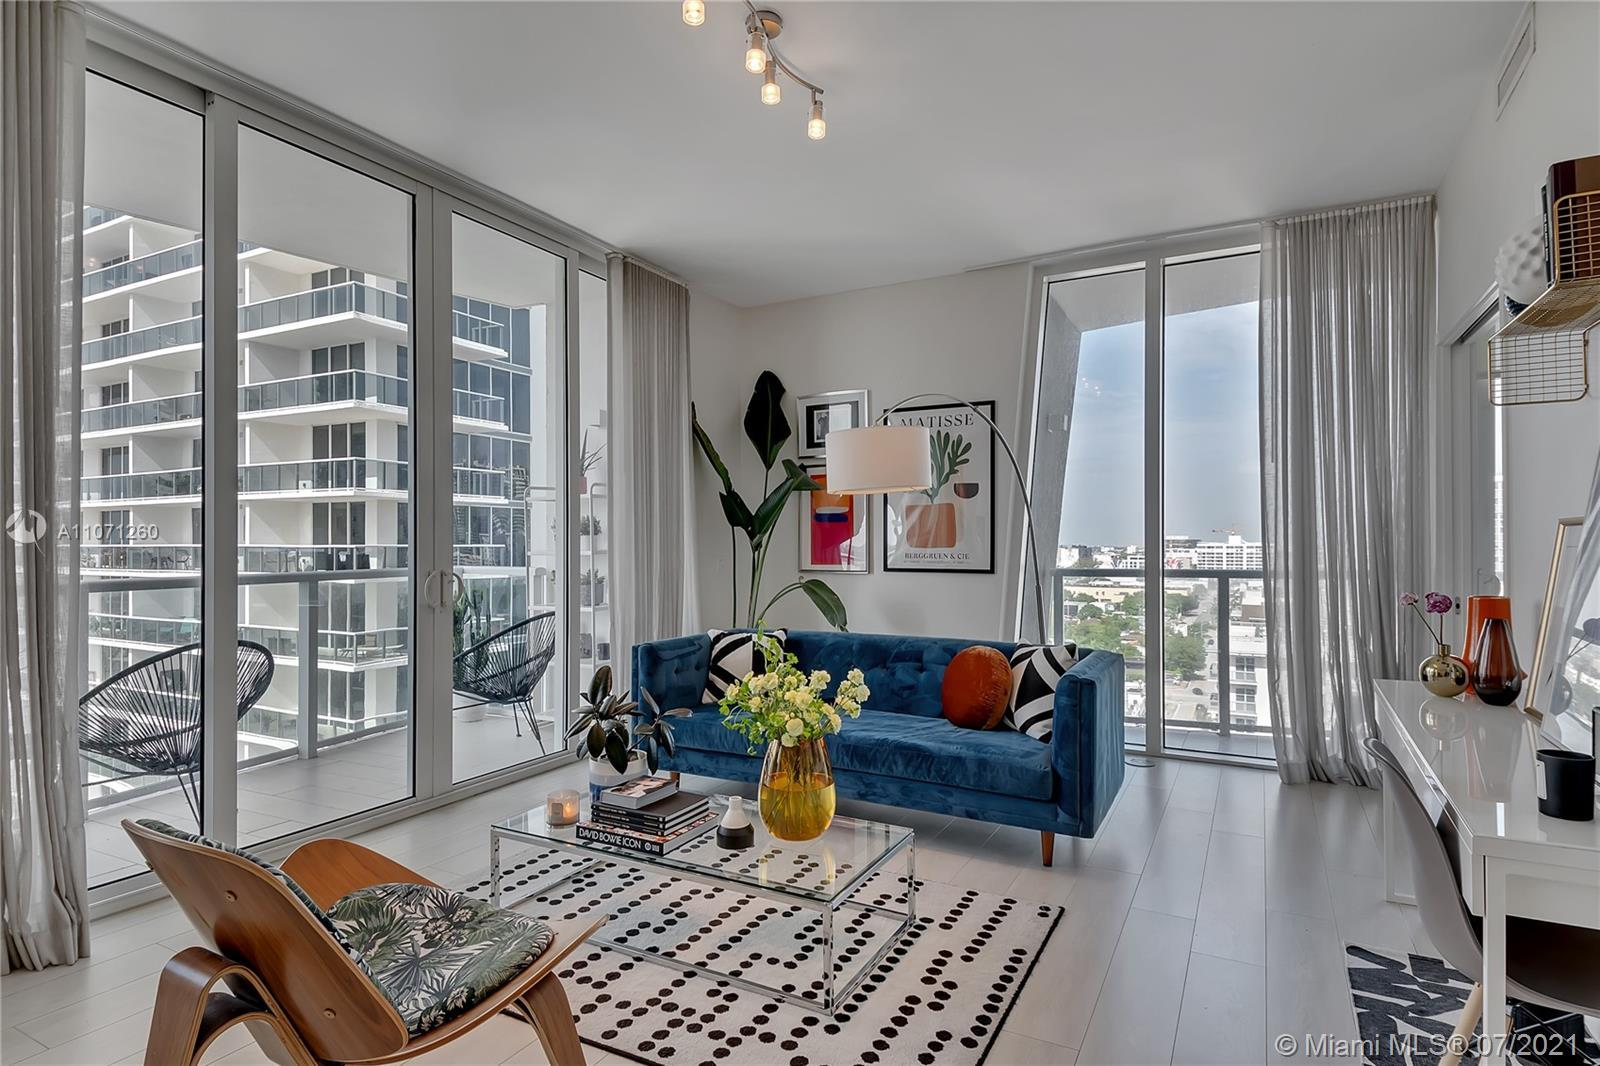 A beautiful condo overlooking the bay and city at boutique building, Crimson, in Edgewater. This 1,2